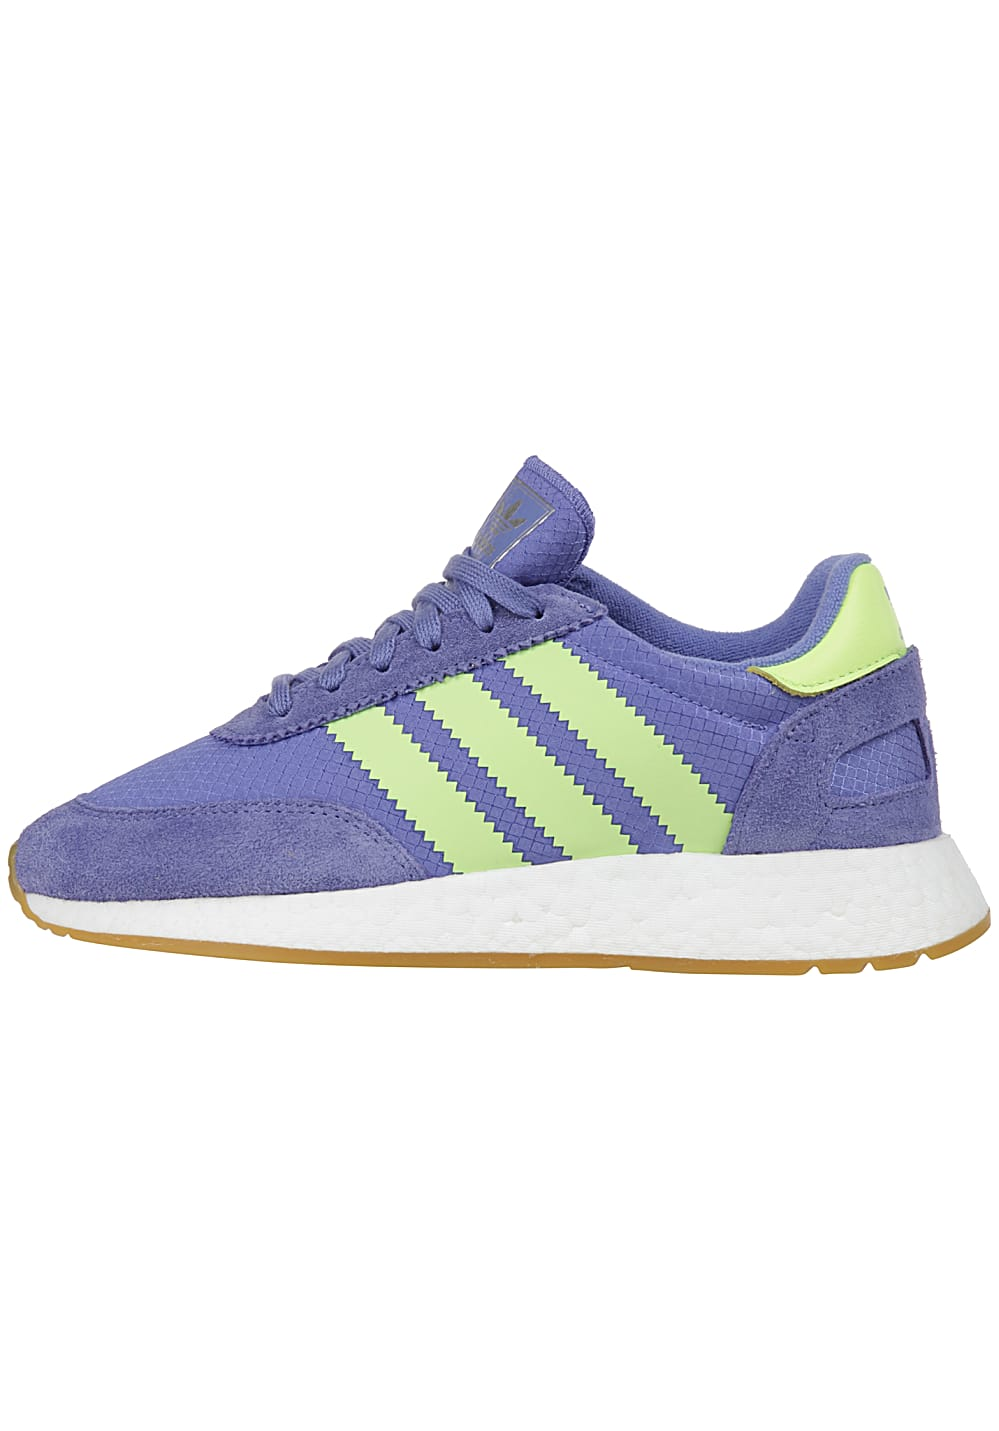 adidas Originals I 5923 Sneaker für Damen Blau Planet